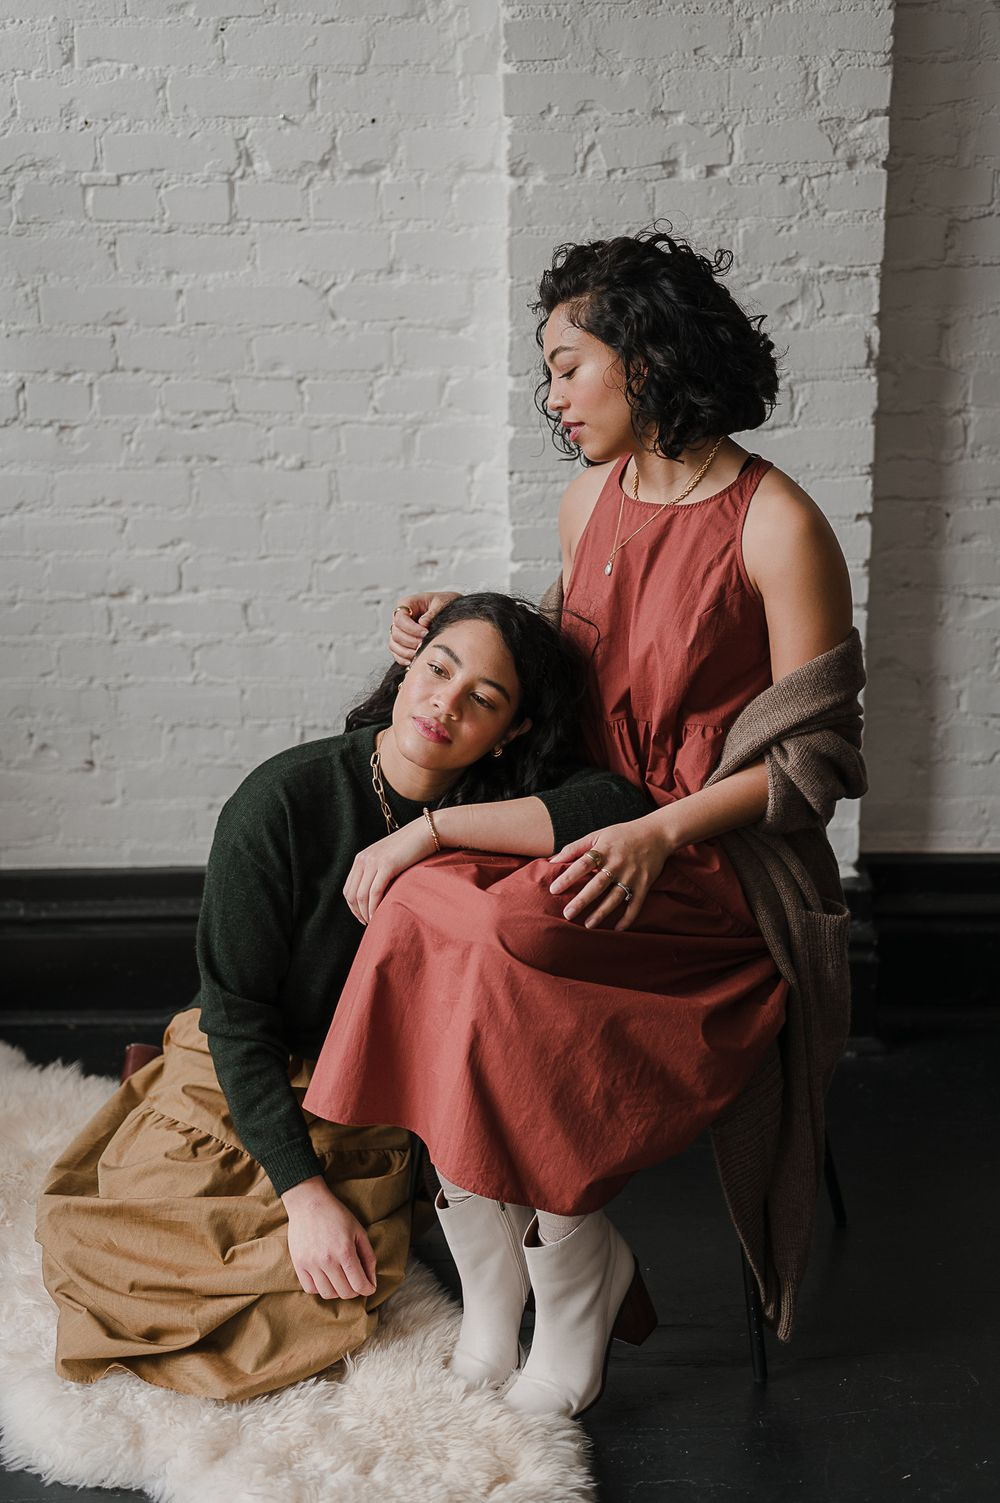 Clothing campaign brand portrait by Tiffany Kelterer of 2 women sitting together in Pioneer Square studio Seattle